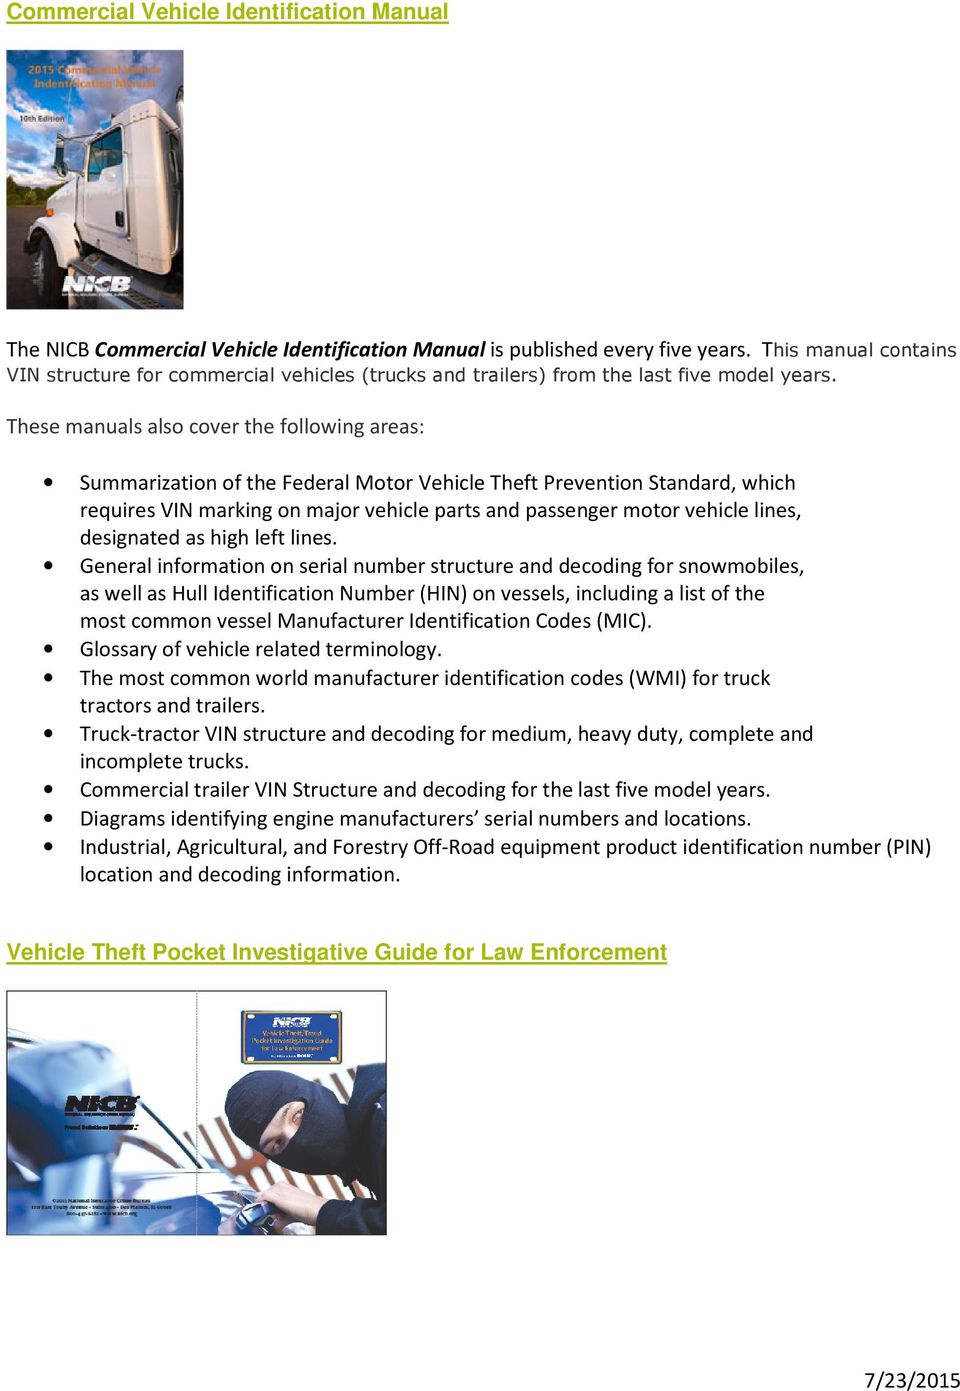 NICB Products Available for Law Enforcement - PDF